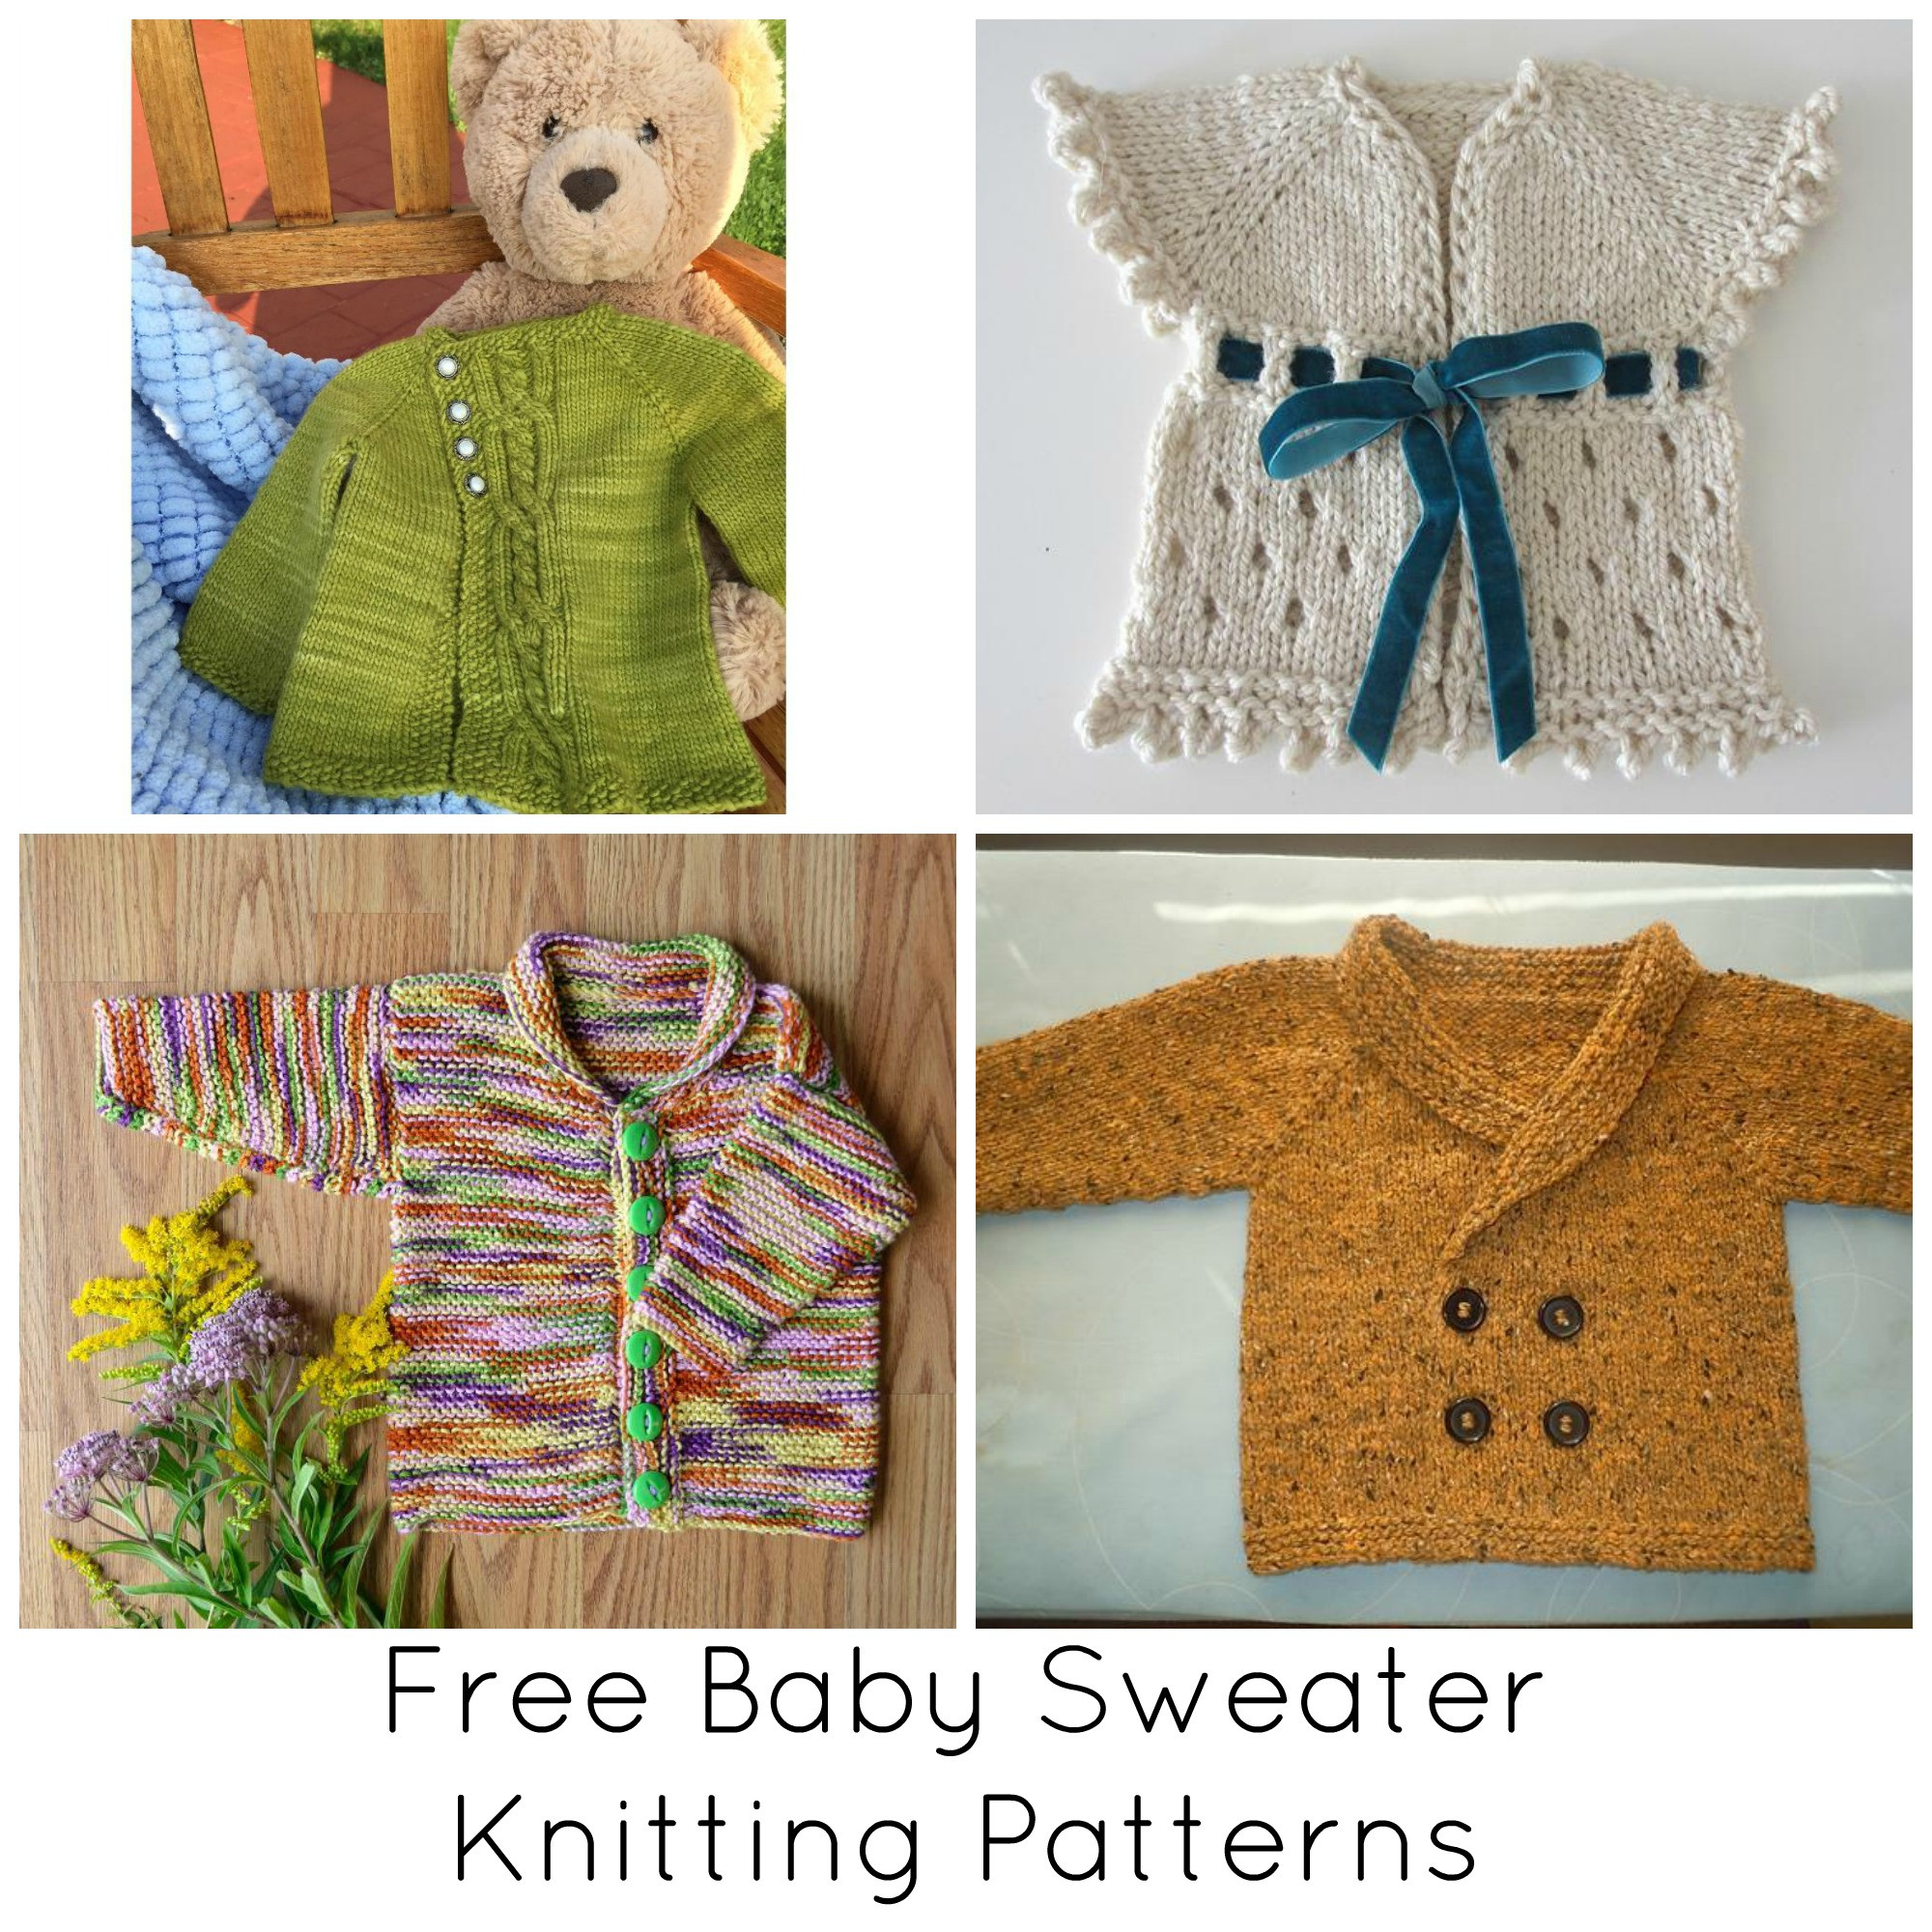 Free Baby Knitting Patterns Unique Our Favorite Free Baby Sweater Knitting Patterns Of Awesome 43 Images Free Baby Knitting Patterns